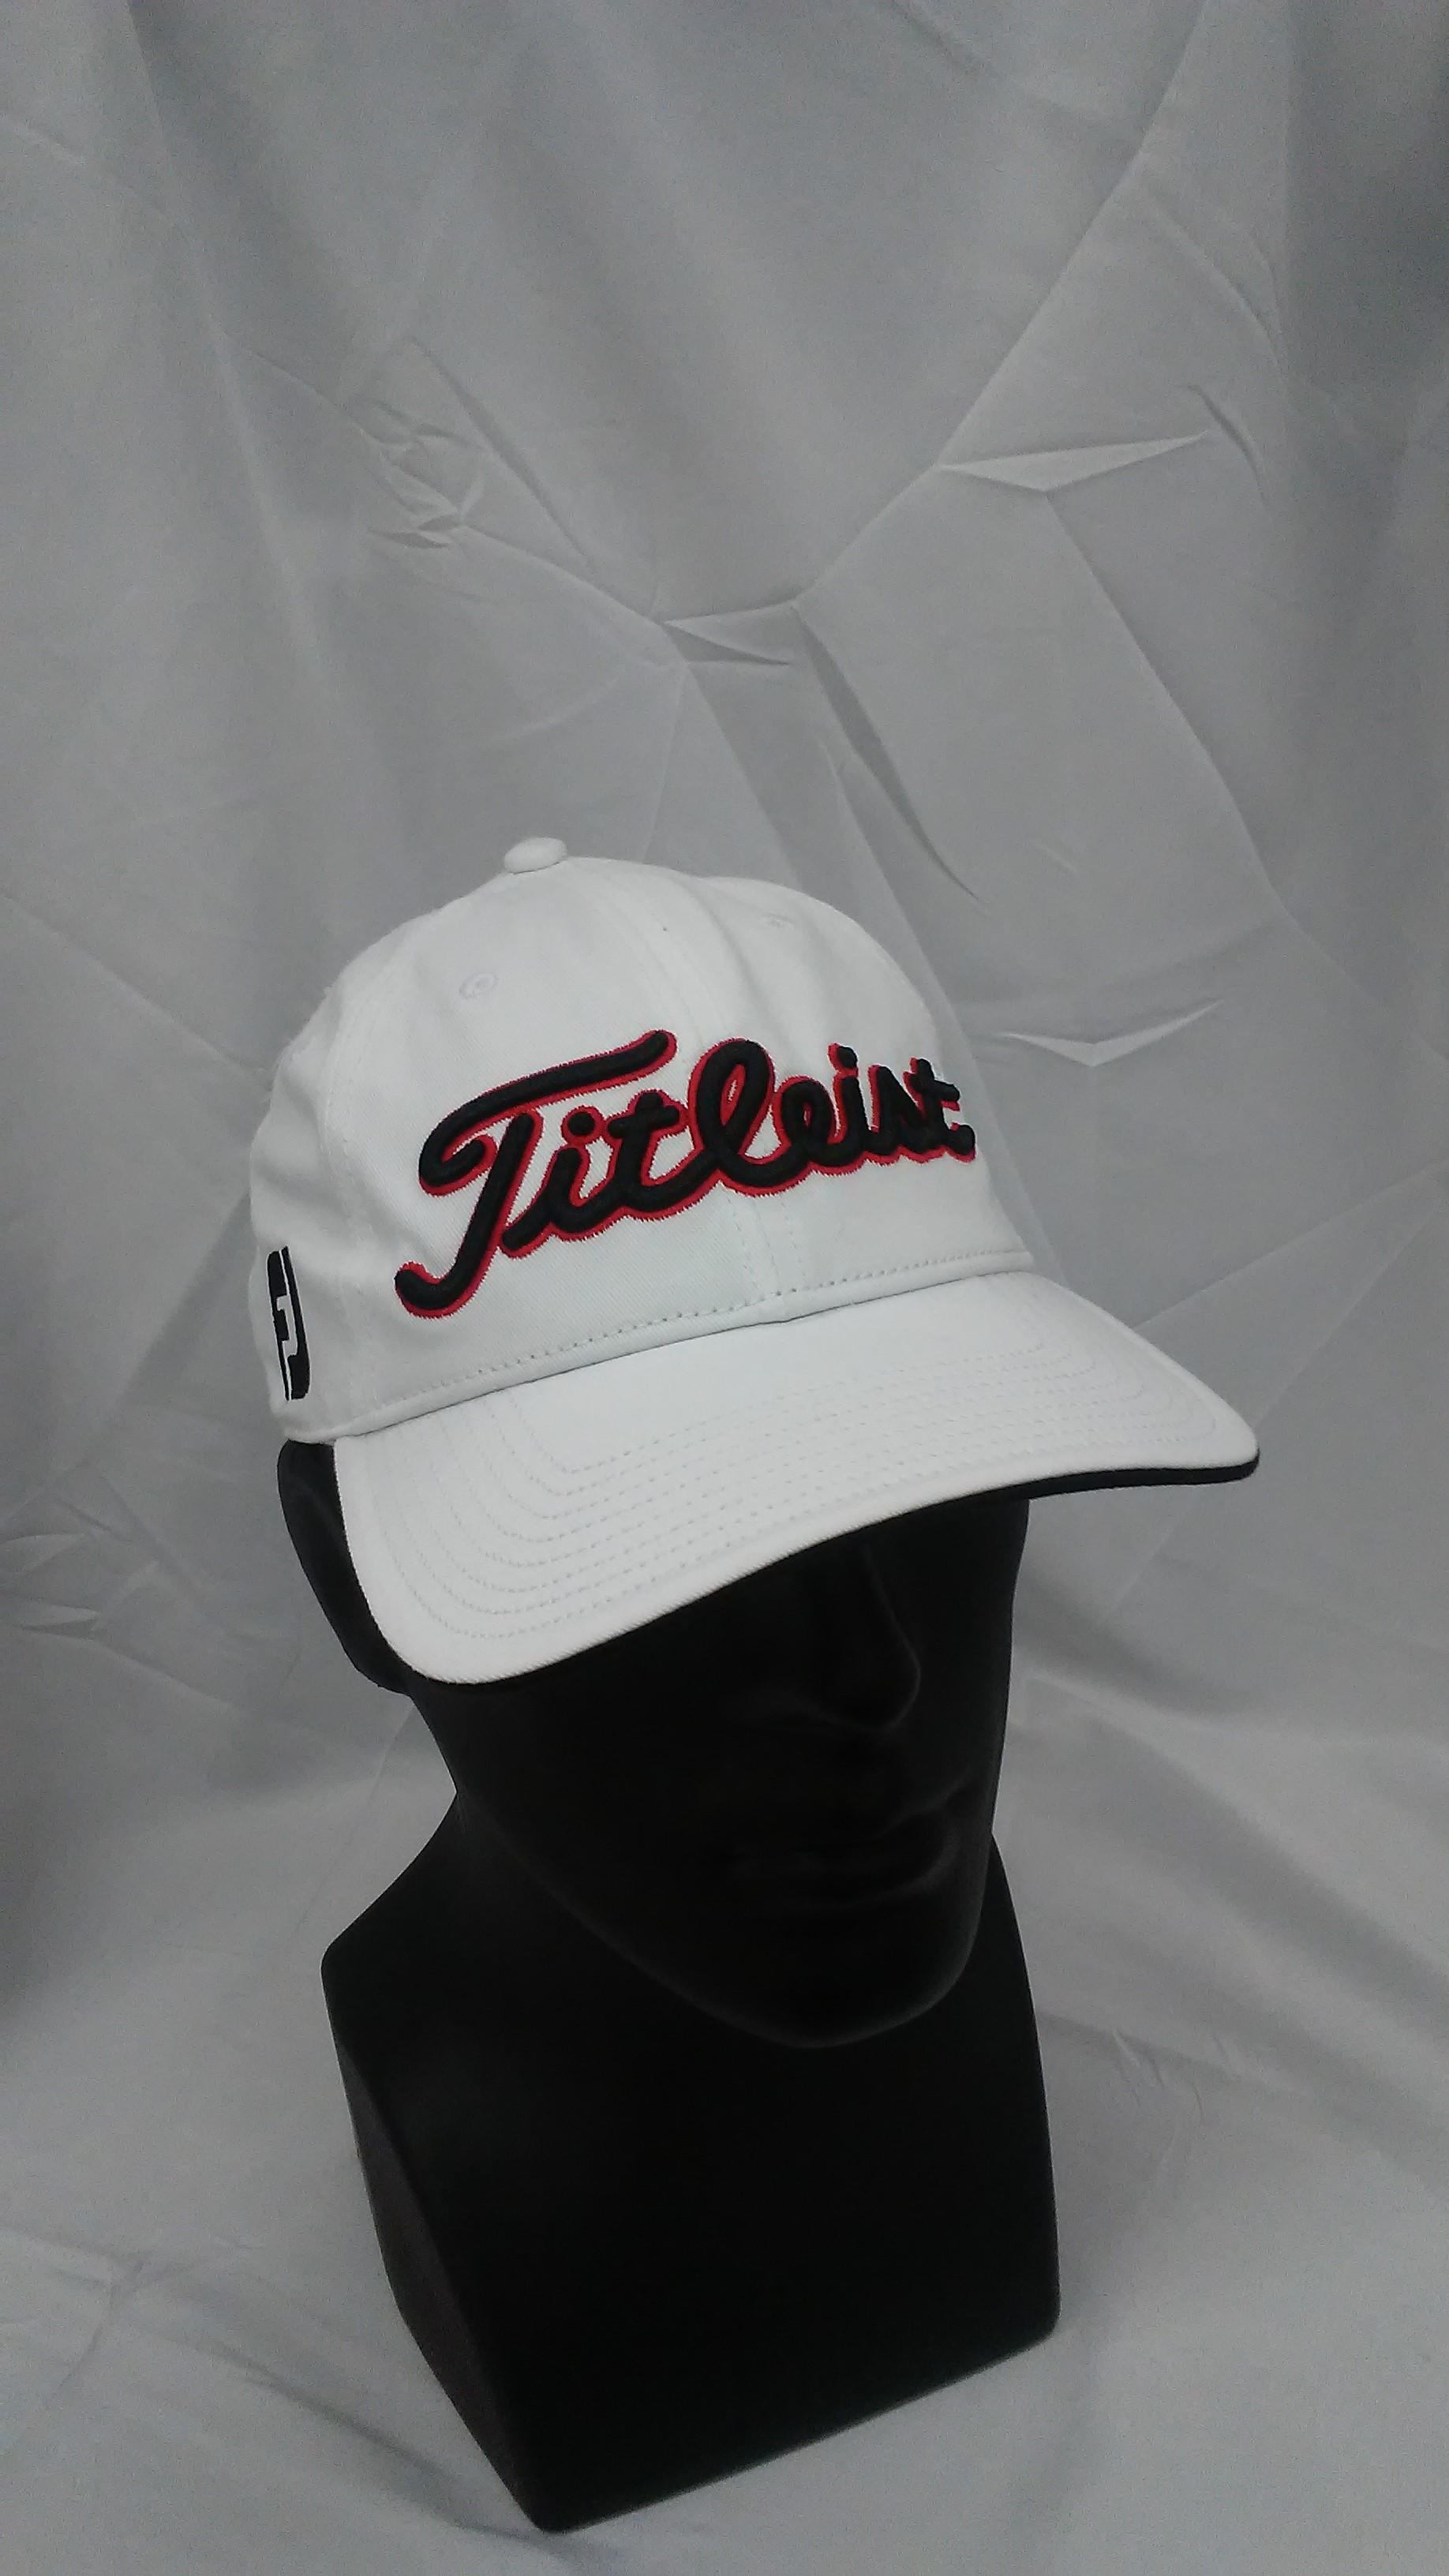 149c631eeb2 Visit our eBay Store for more great deals  Hurricane Golf New Titleist Golf  Tour Adjustable Hat White PRO V1   FootJoy Logos BUY IT NOW  17.99!